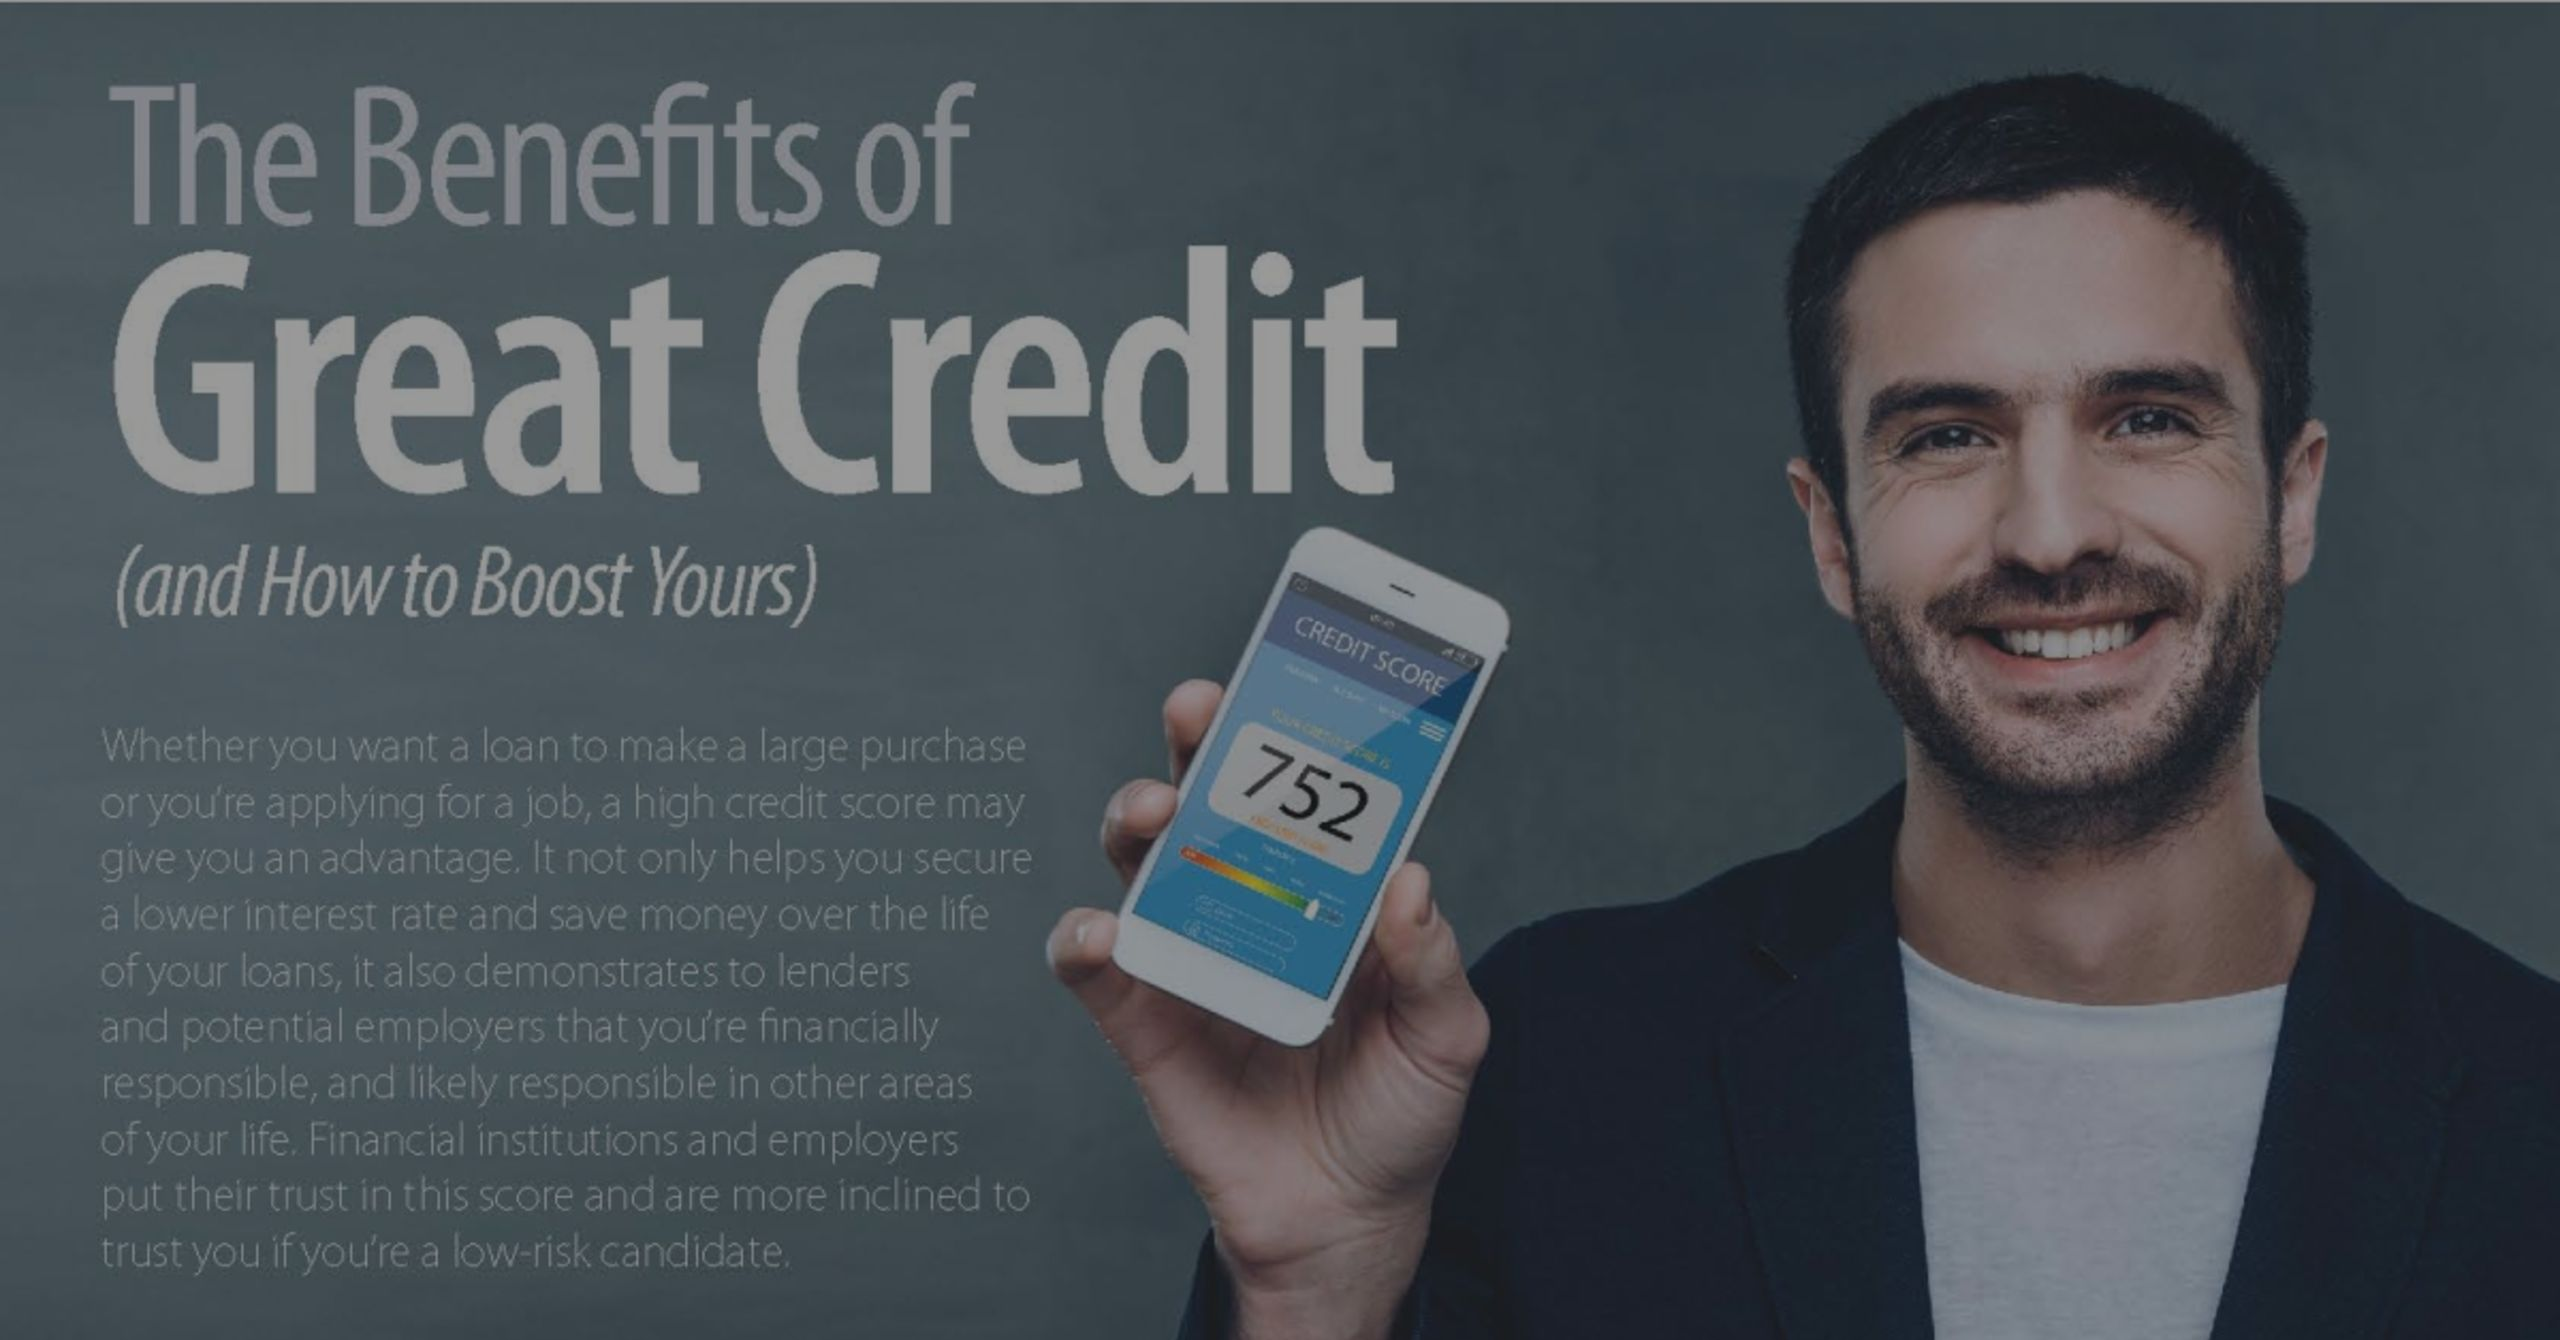 The Benefits of Great Credit (and How to Boost Yours)